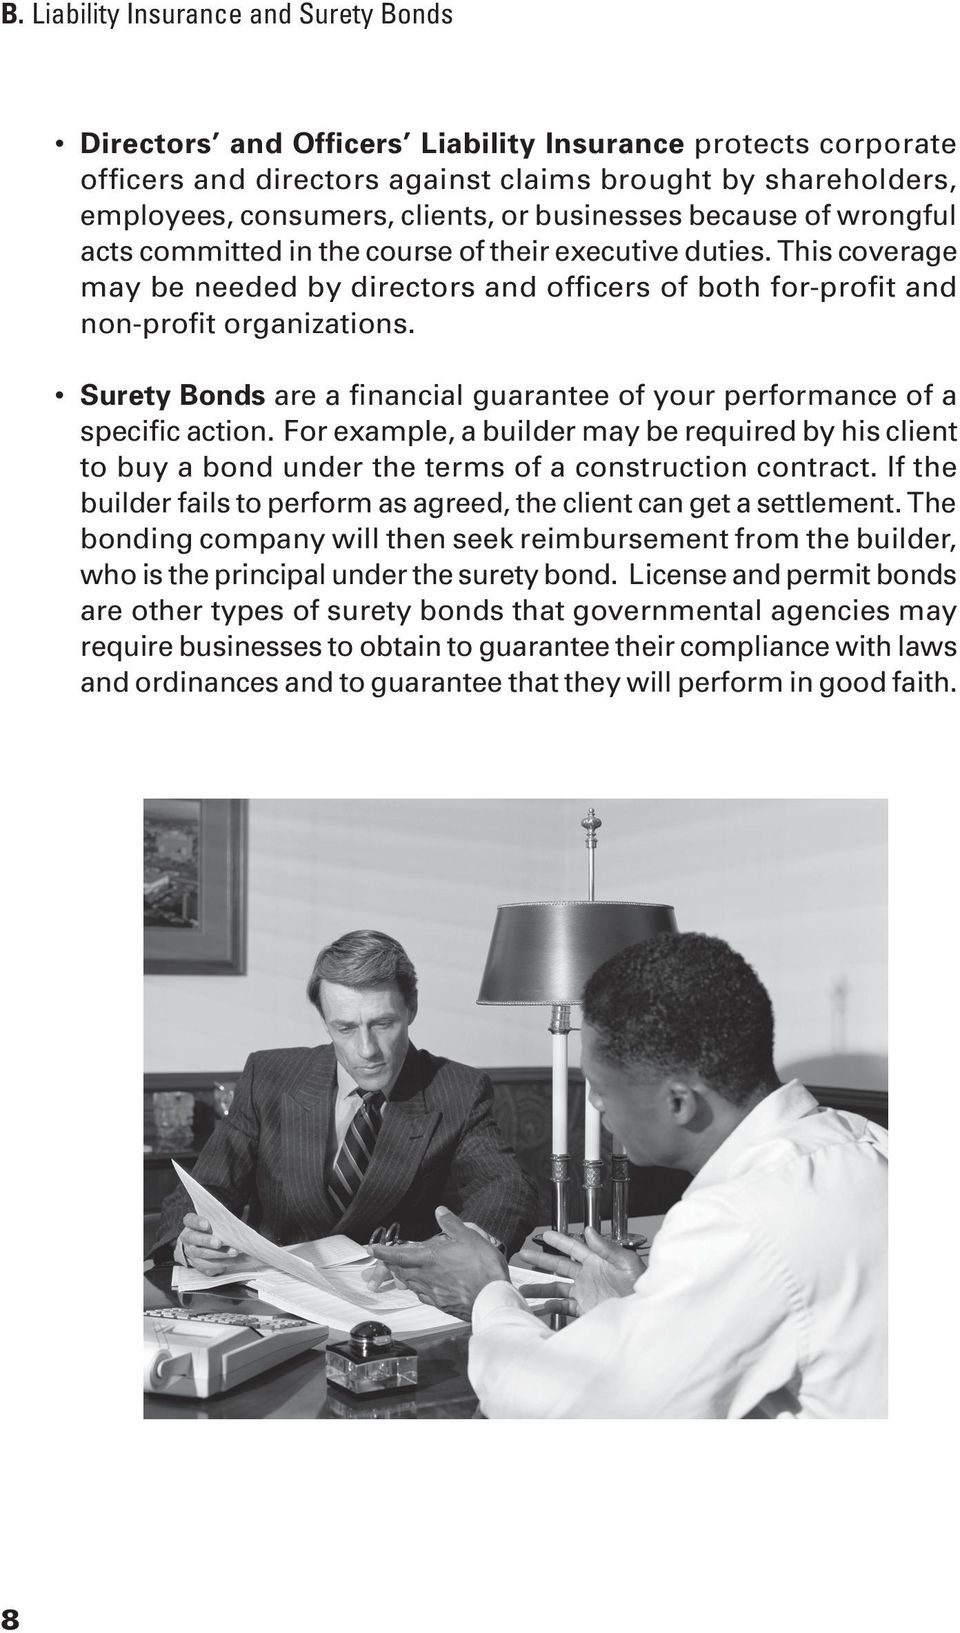 Surety Bonds are a financial guarantee of your performance of a specific action. For example, a builder may be required by his client to buy a bond under the terms of a construction contract.